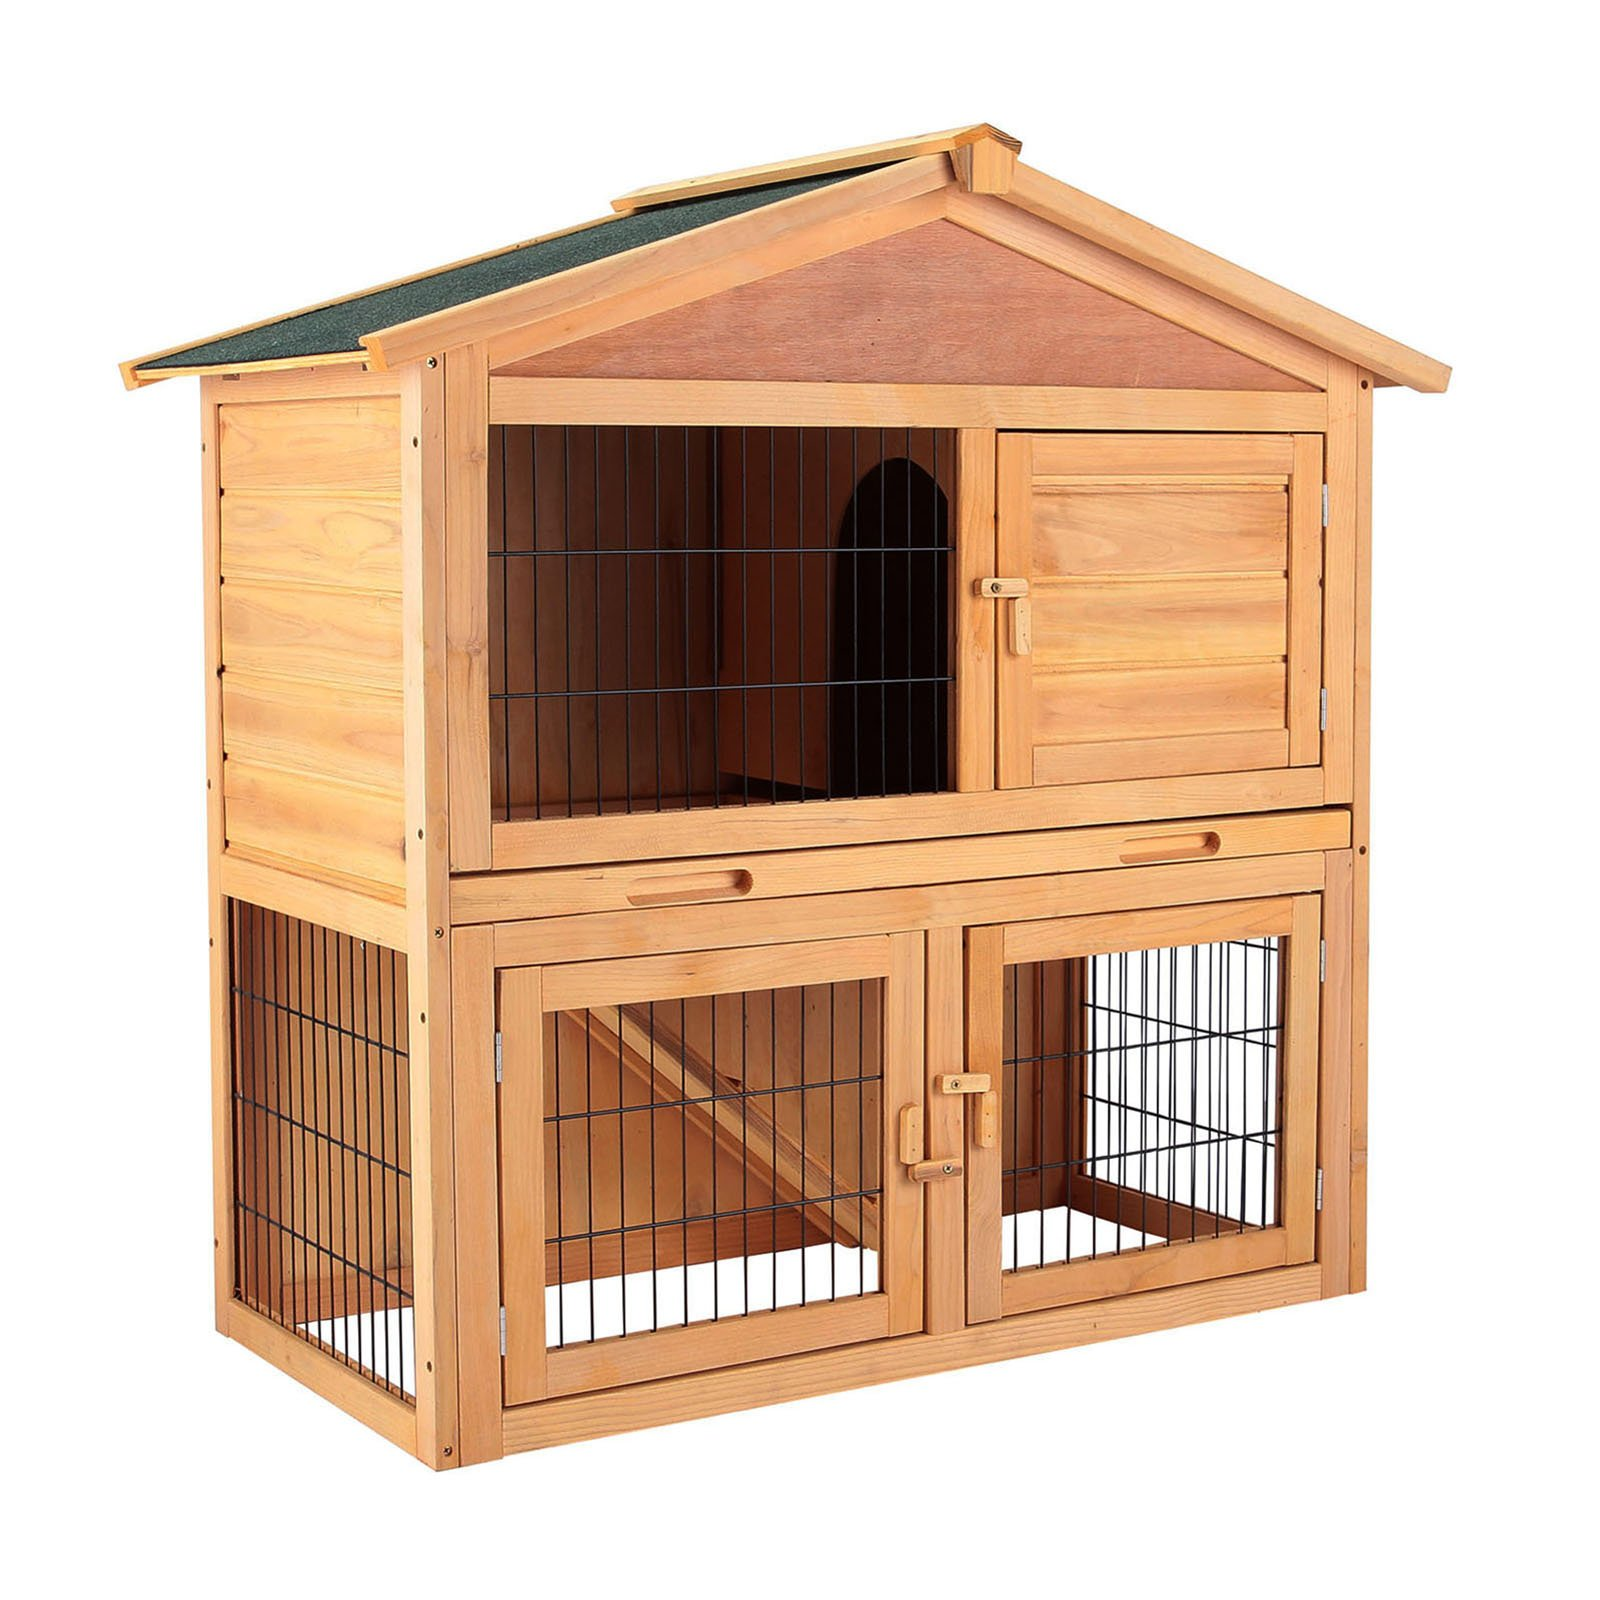 Uenjoy 40'' Wooden Rabbit Hutch Cage Chicken Coop Hen House Poultry Cage Pet